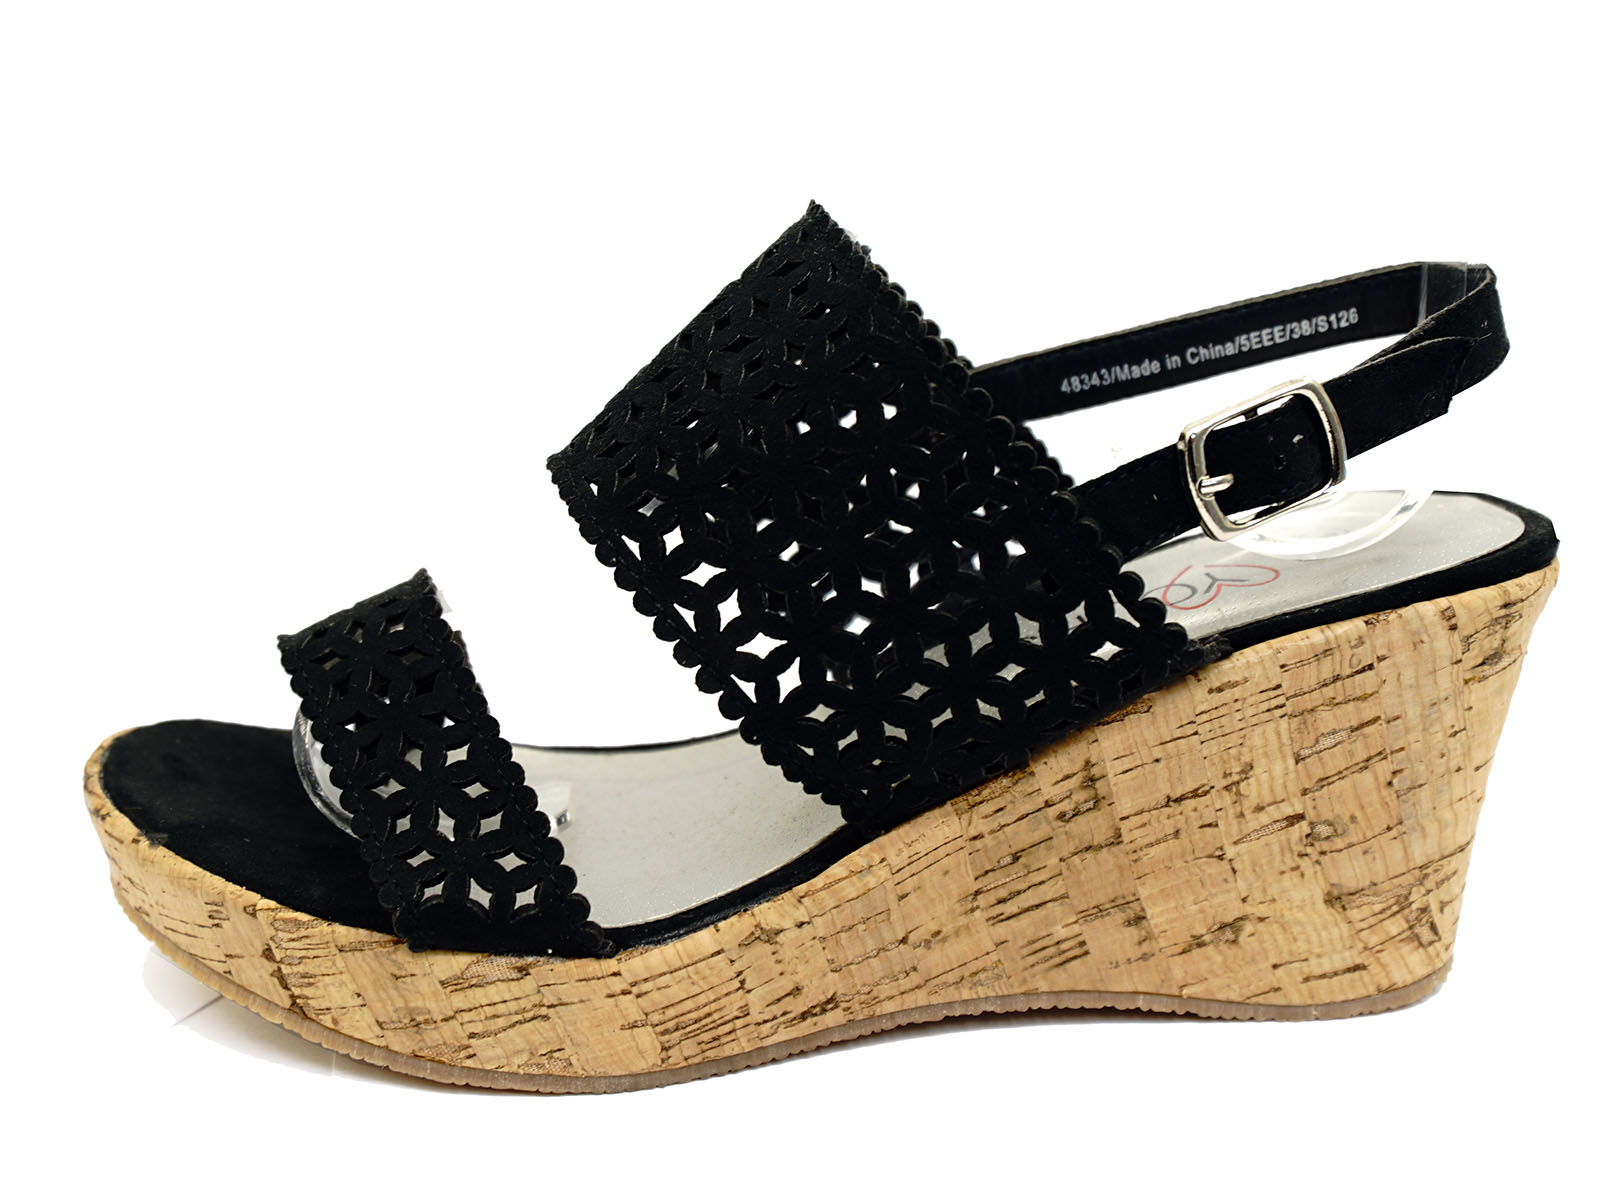 d47b163c076 WOMENS BLACK WIDE-FIT EEE WEDGE PLATFORM OPEN-TOE STRAPPY SANDALS ...